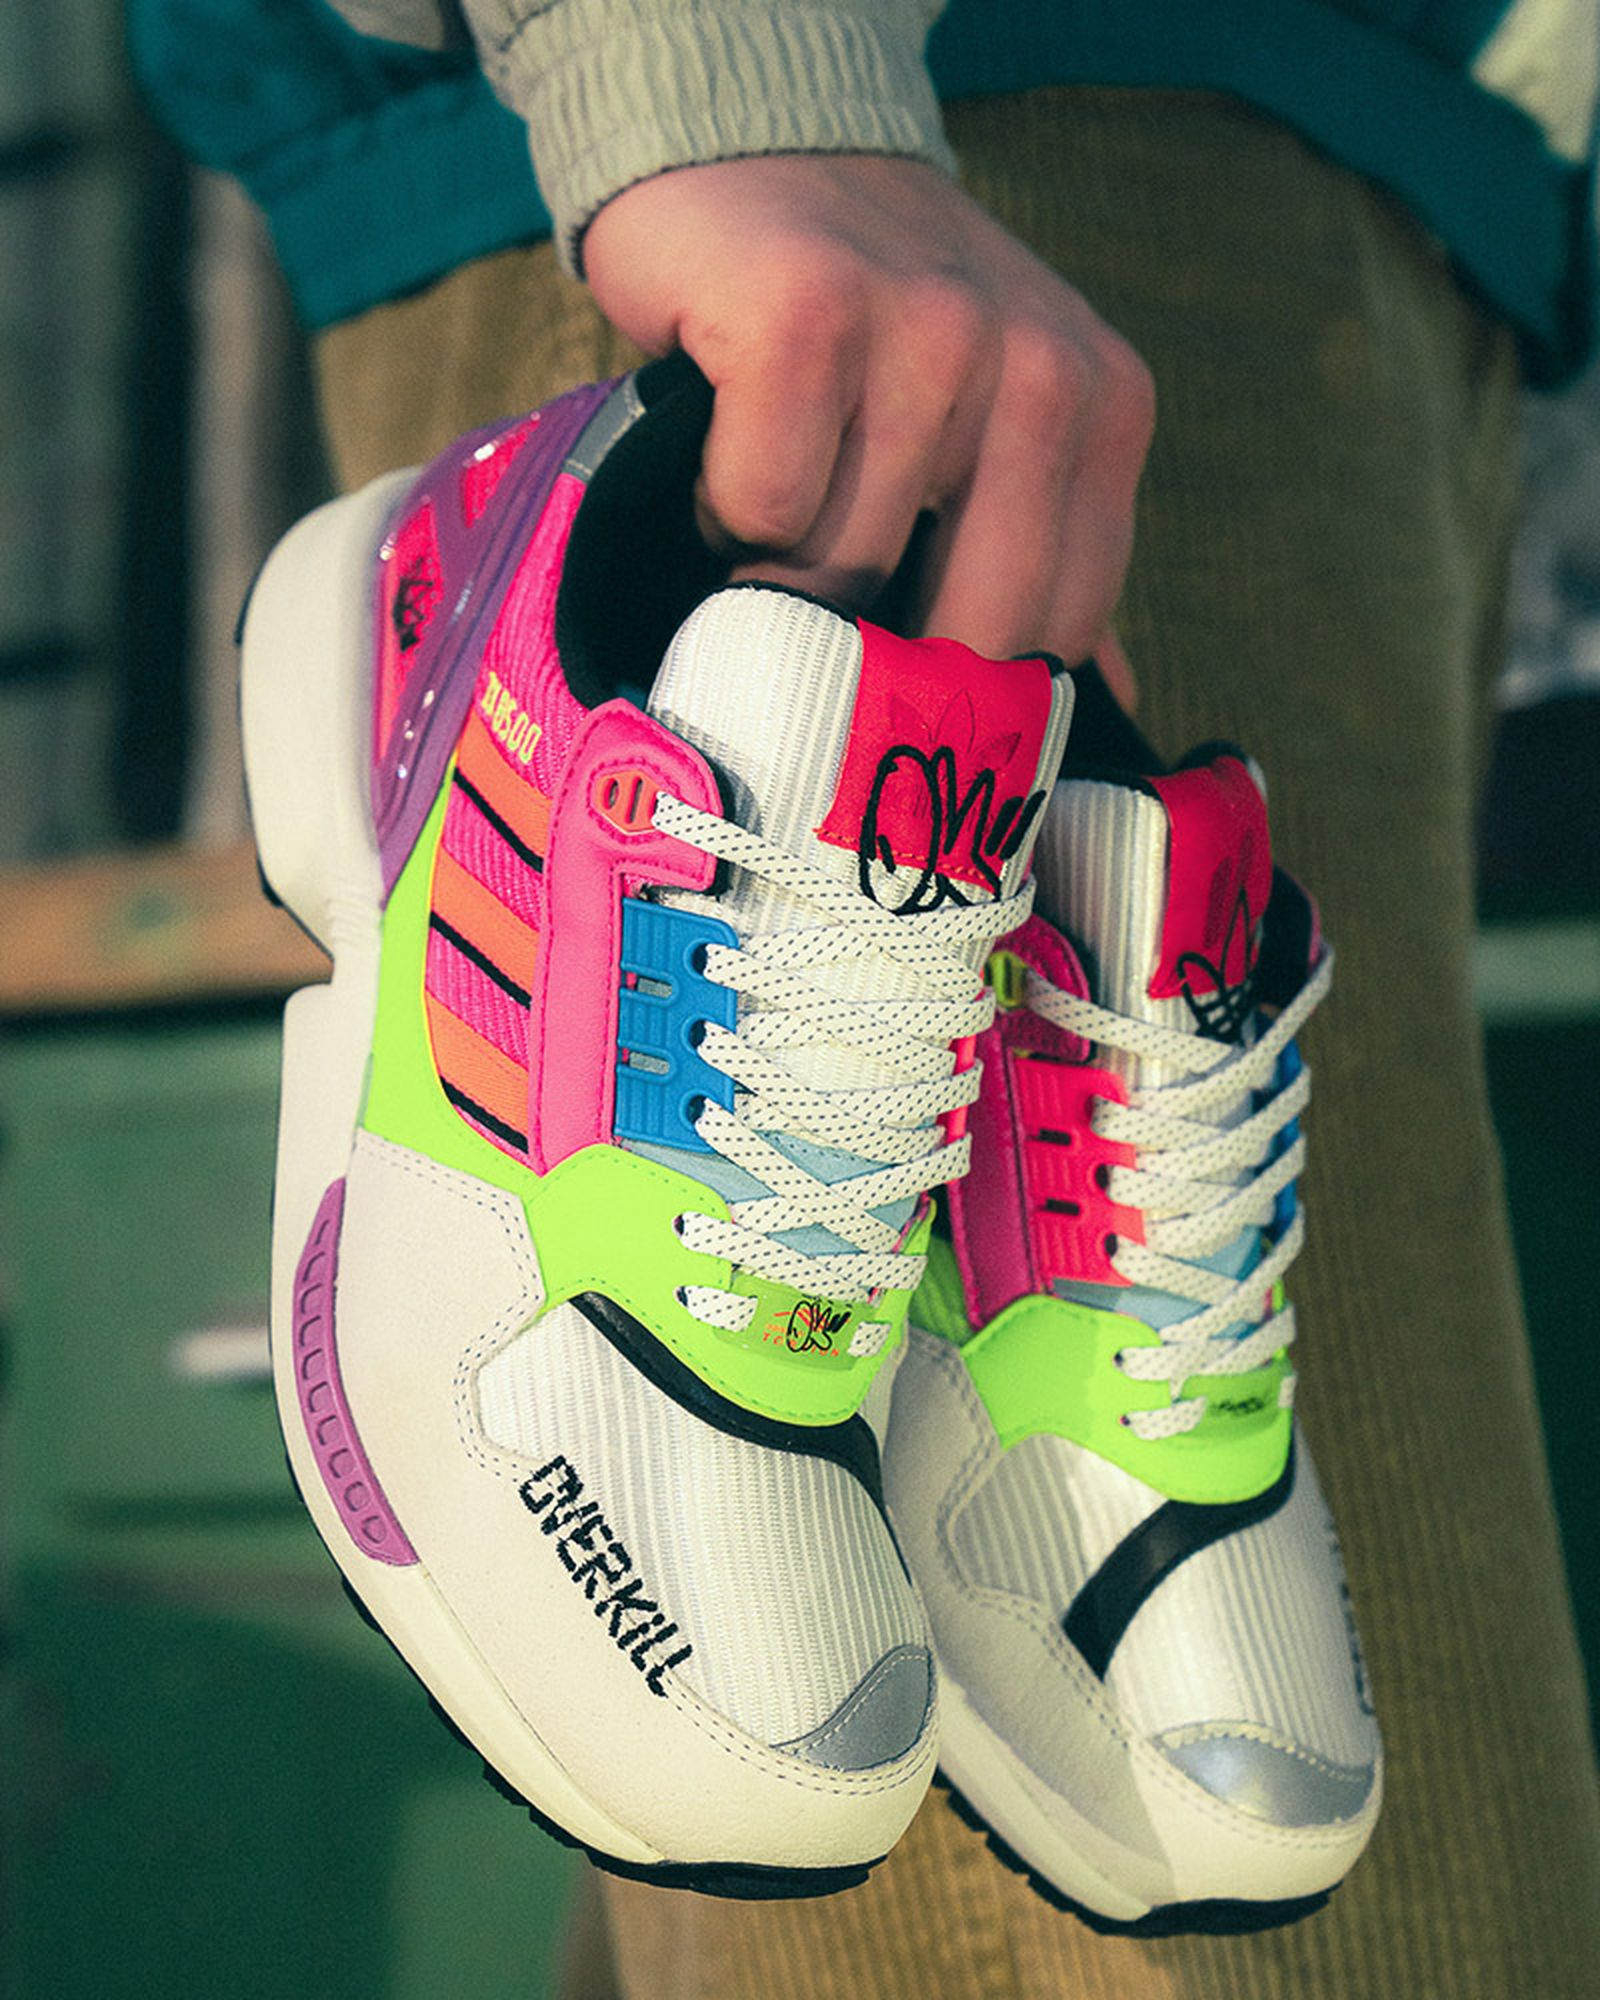 overkill_outdoor_Adidas_AZX-O_GY7642_LowRES-138